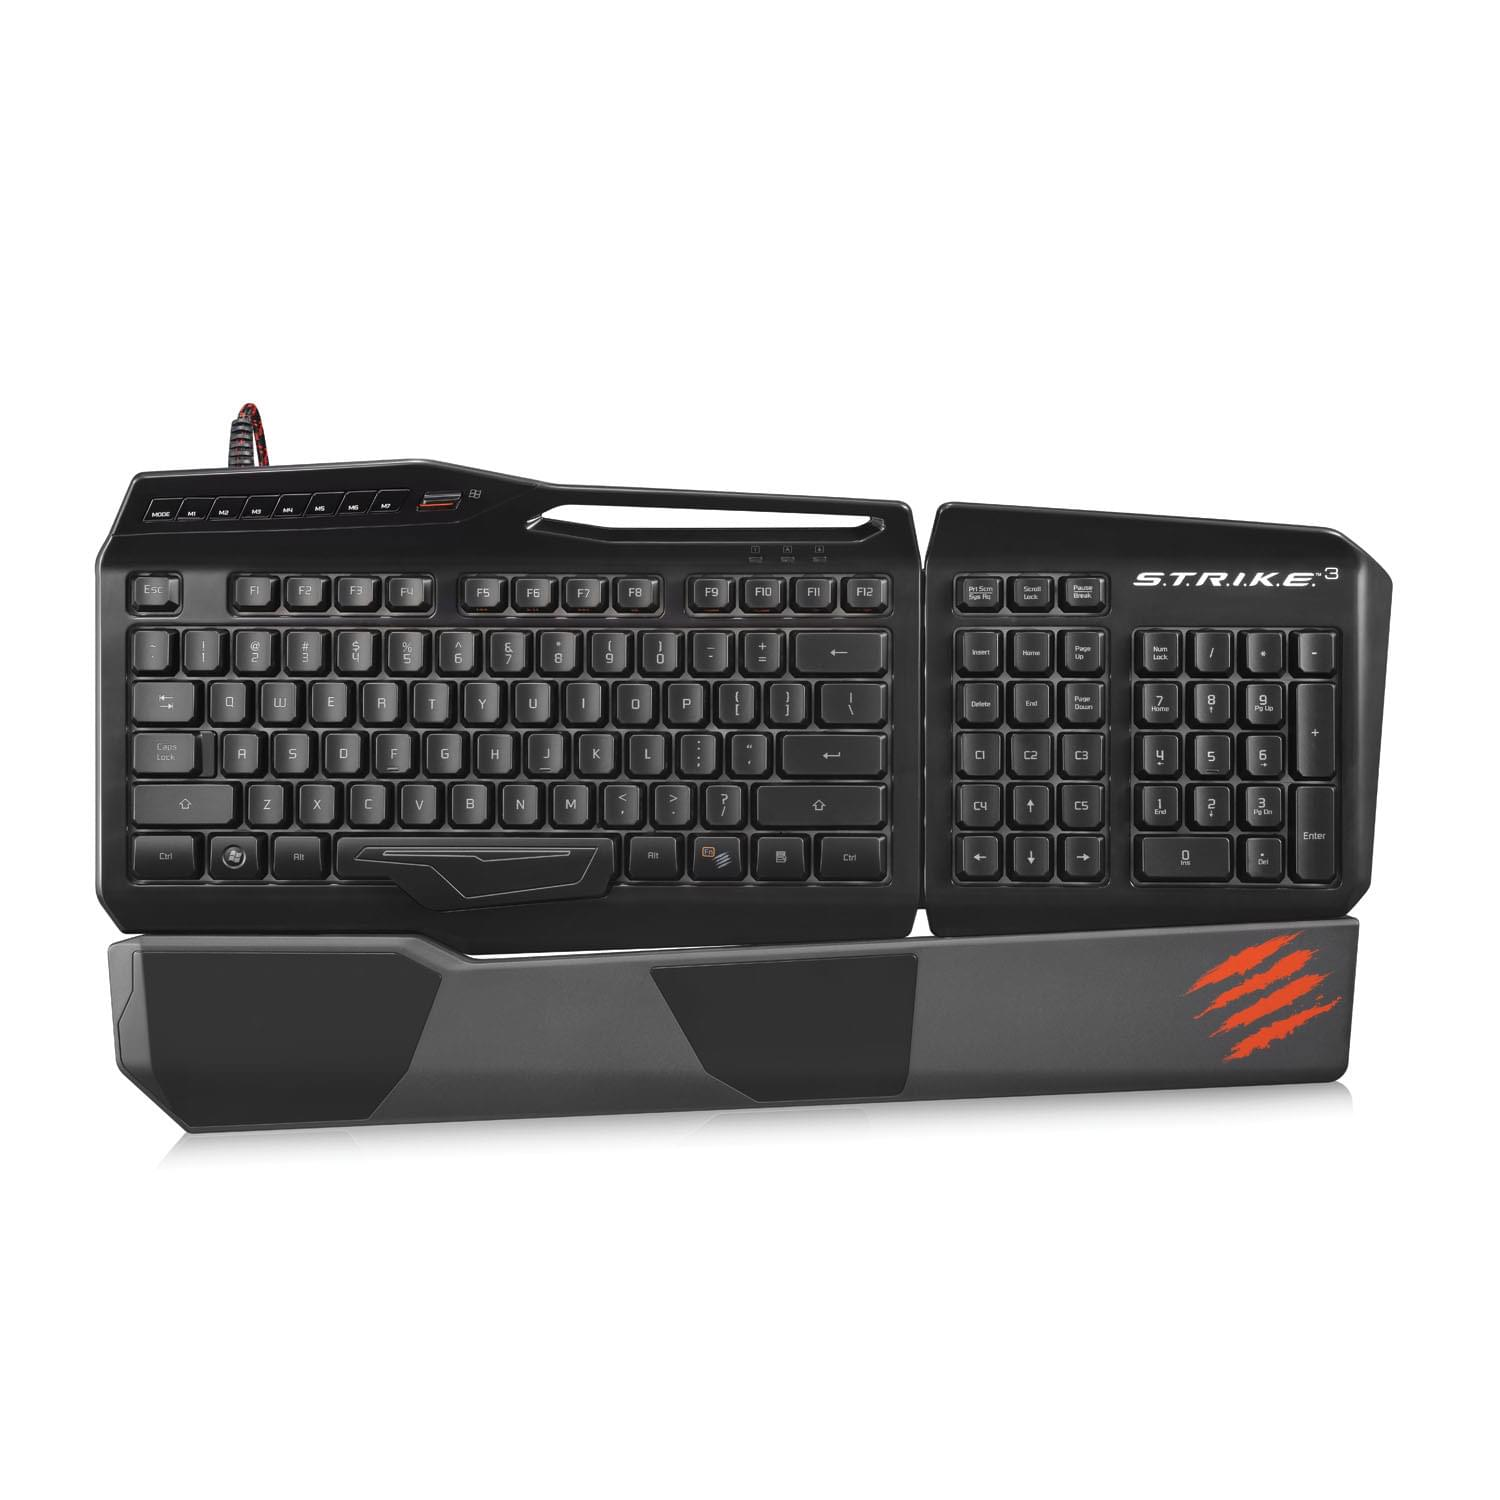 Clavier PC Gamer MAD CATZ STRIKE 3 Glossy Black - 0